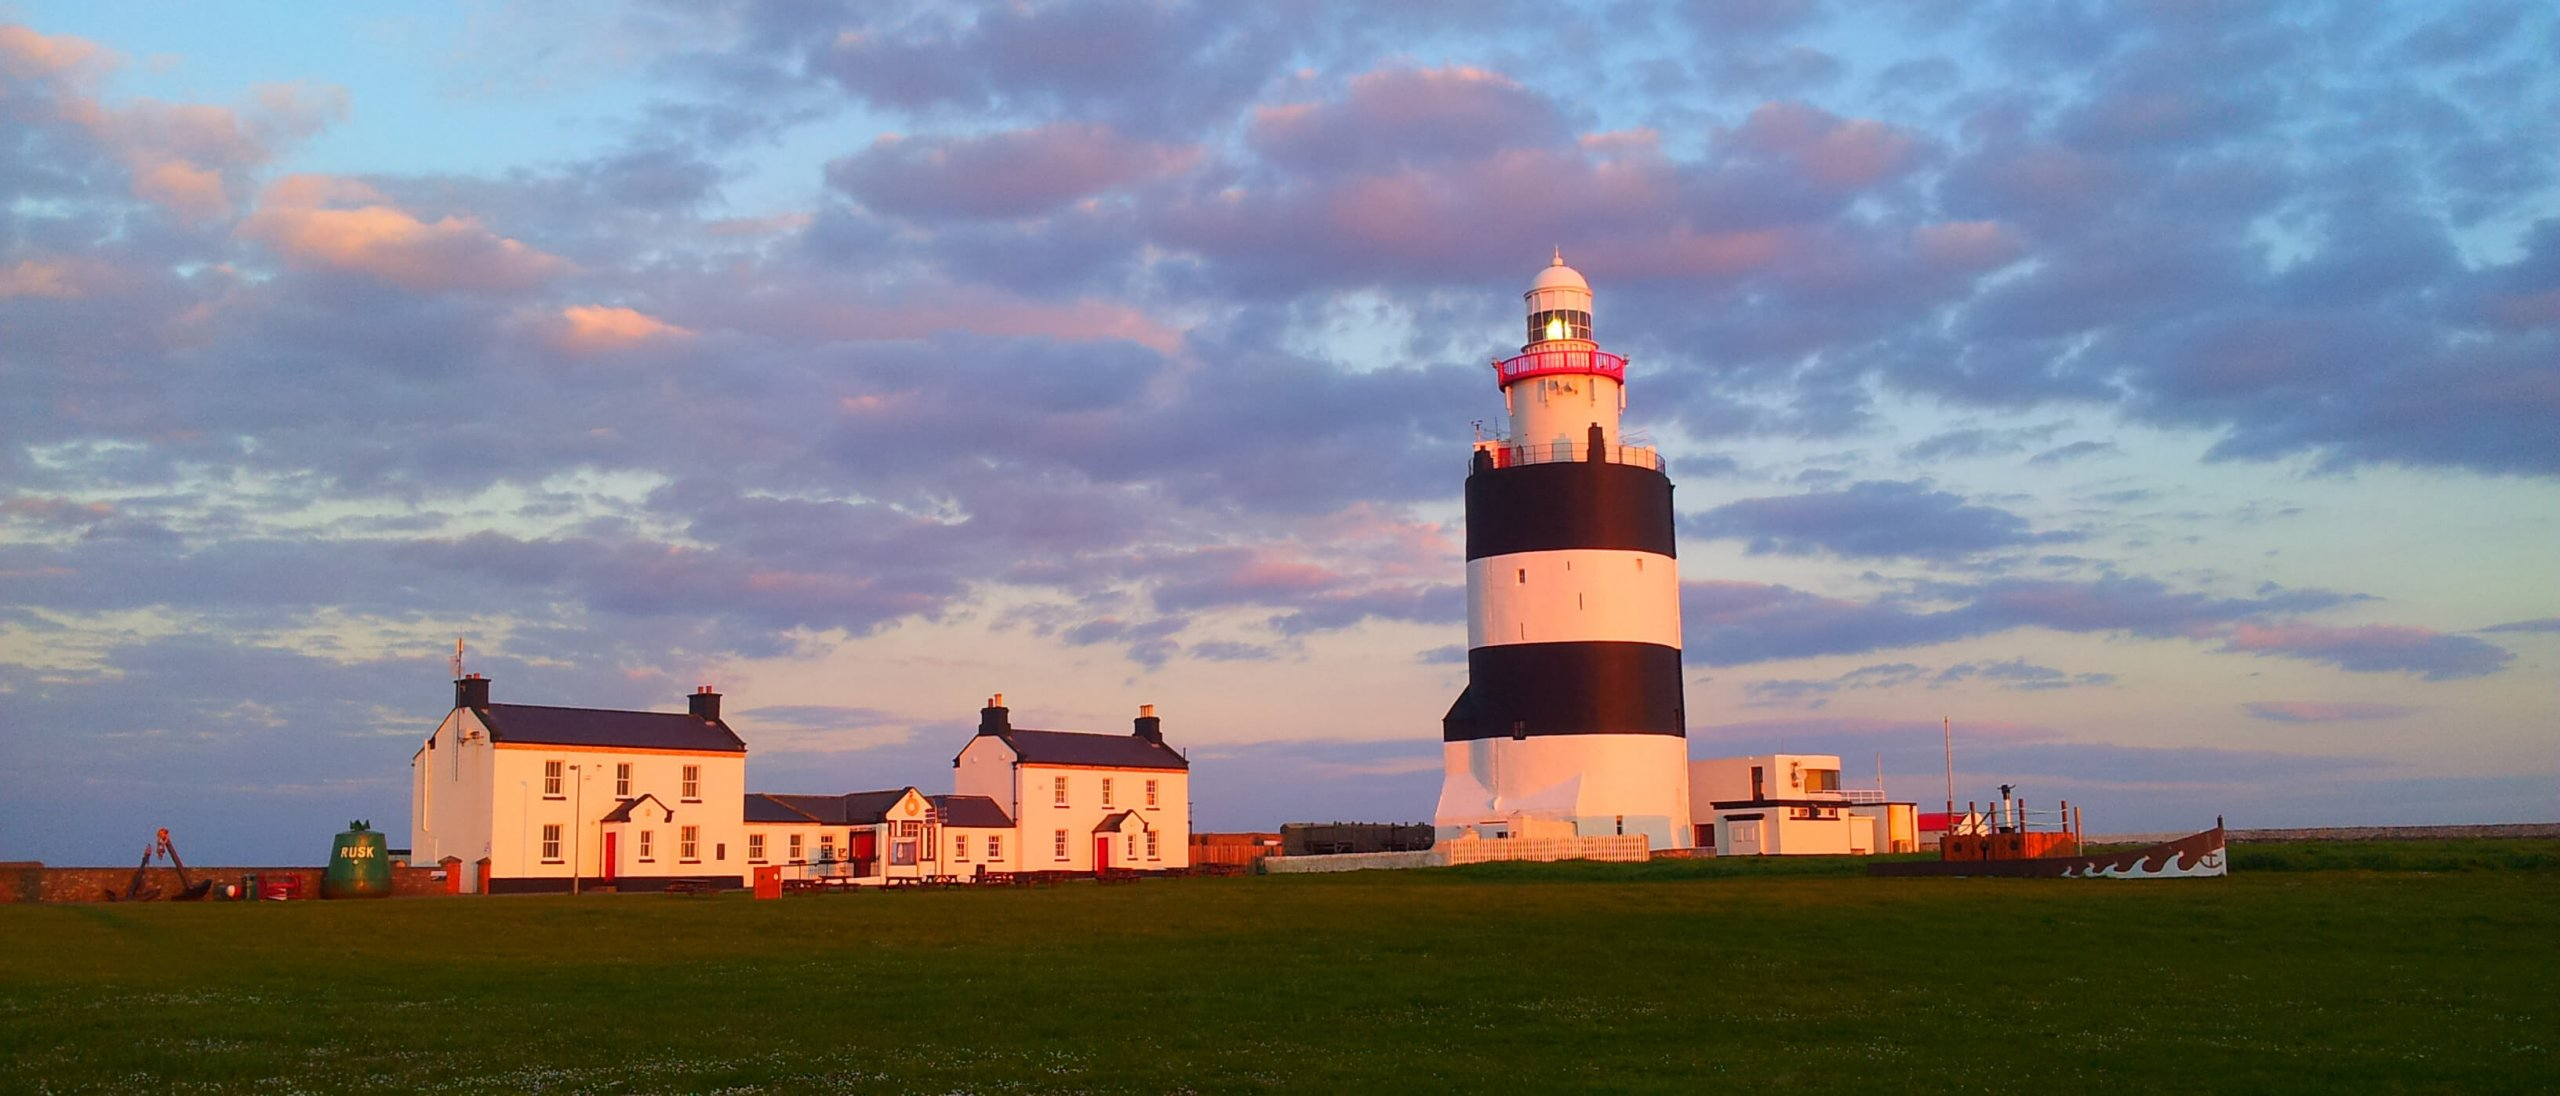 Sunset colours and sky on Hook Lighthouse, Ireland